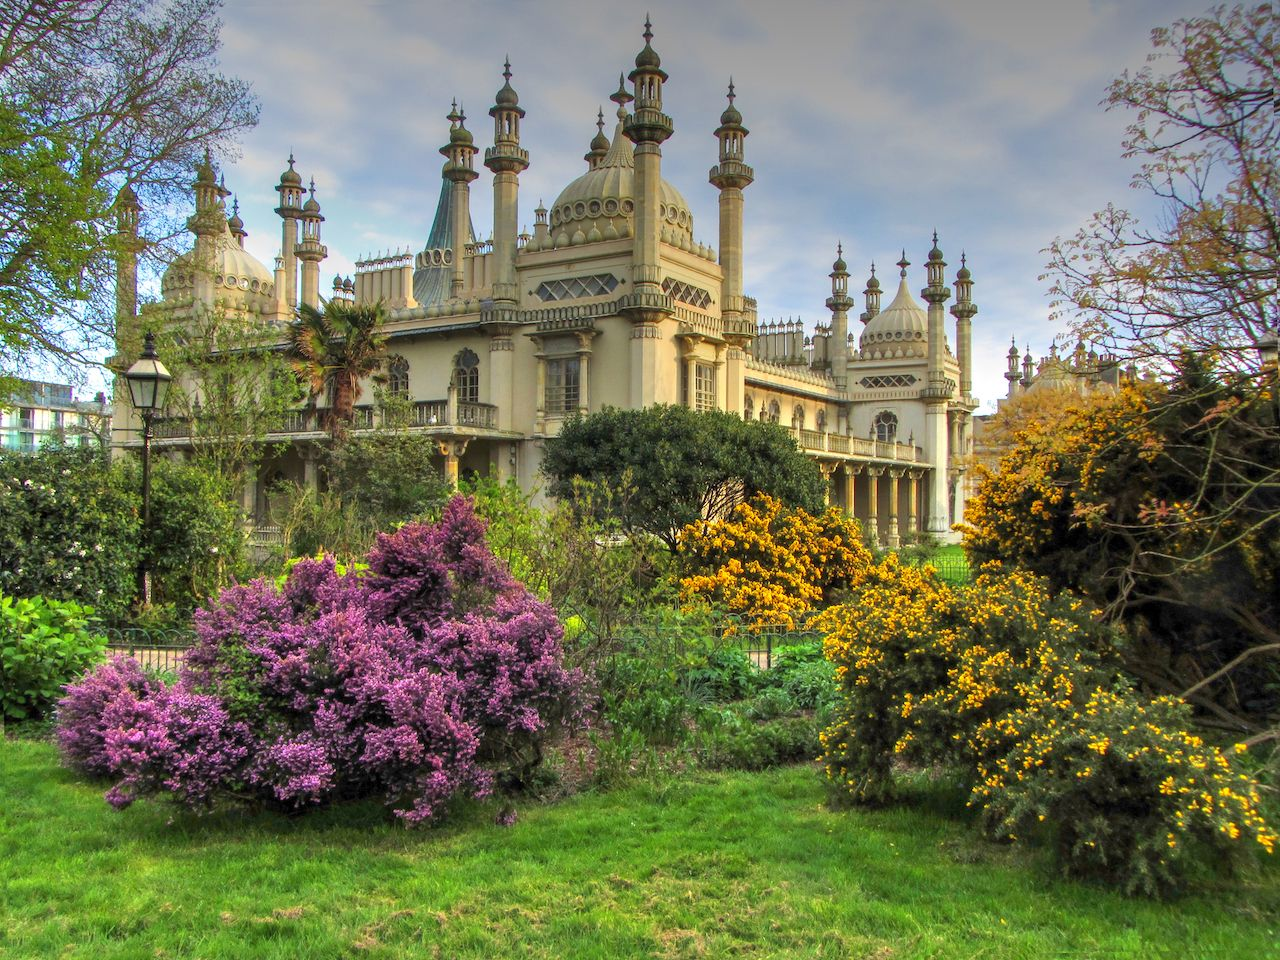 Royal Pavilion and Gardens, Brighton